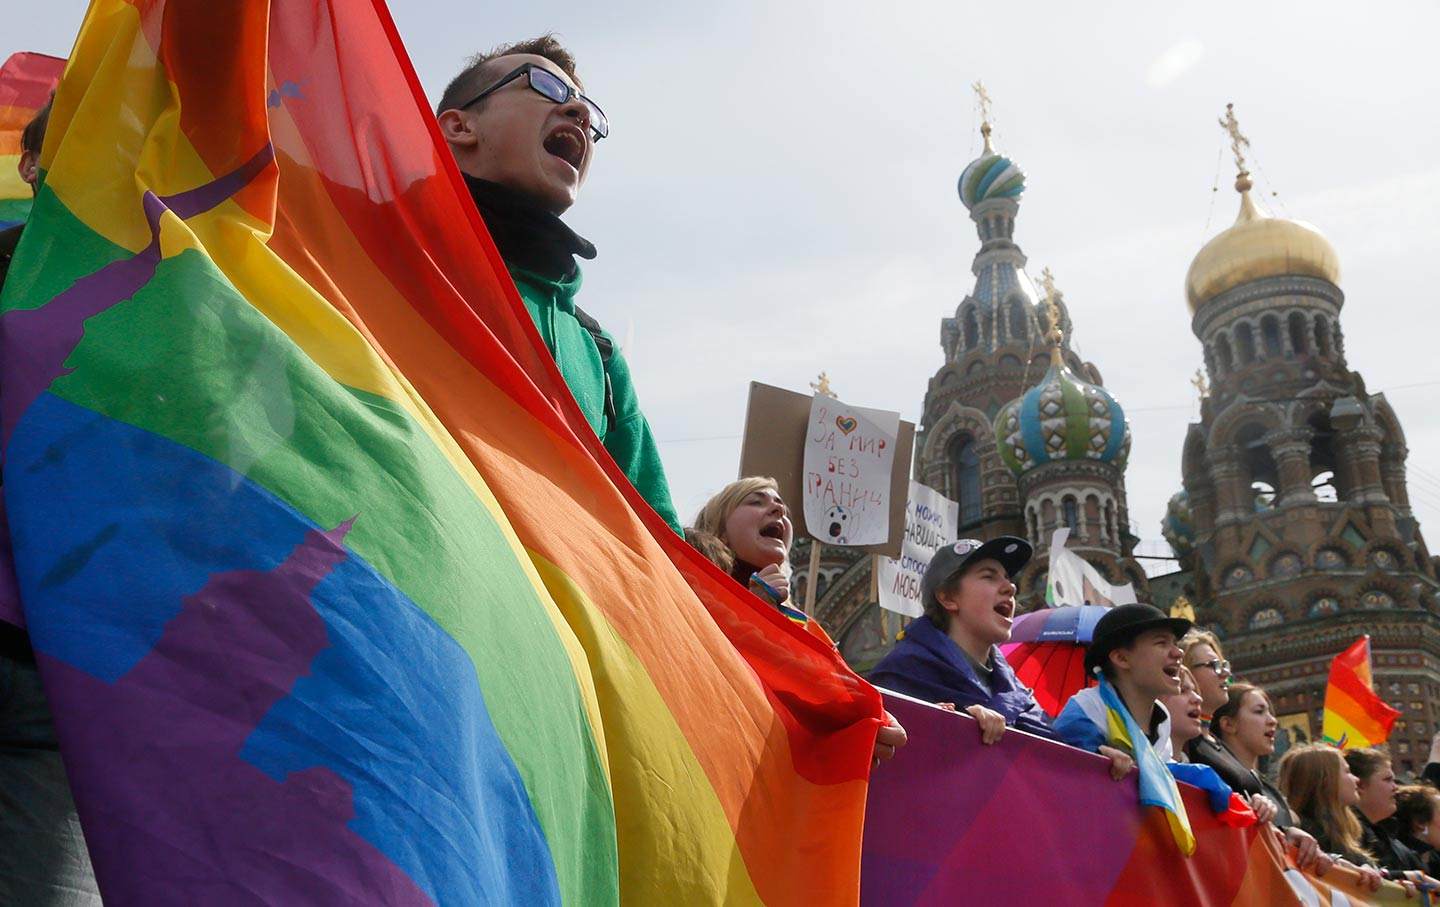 Gay Protestors in Russia